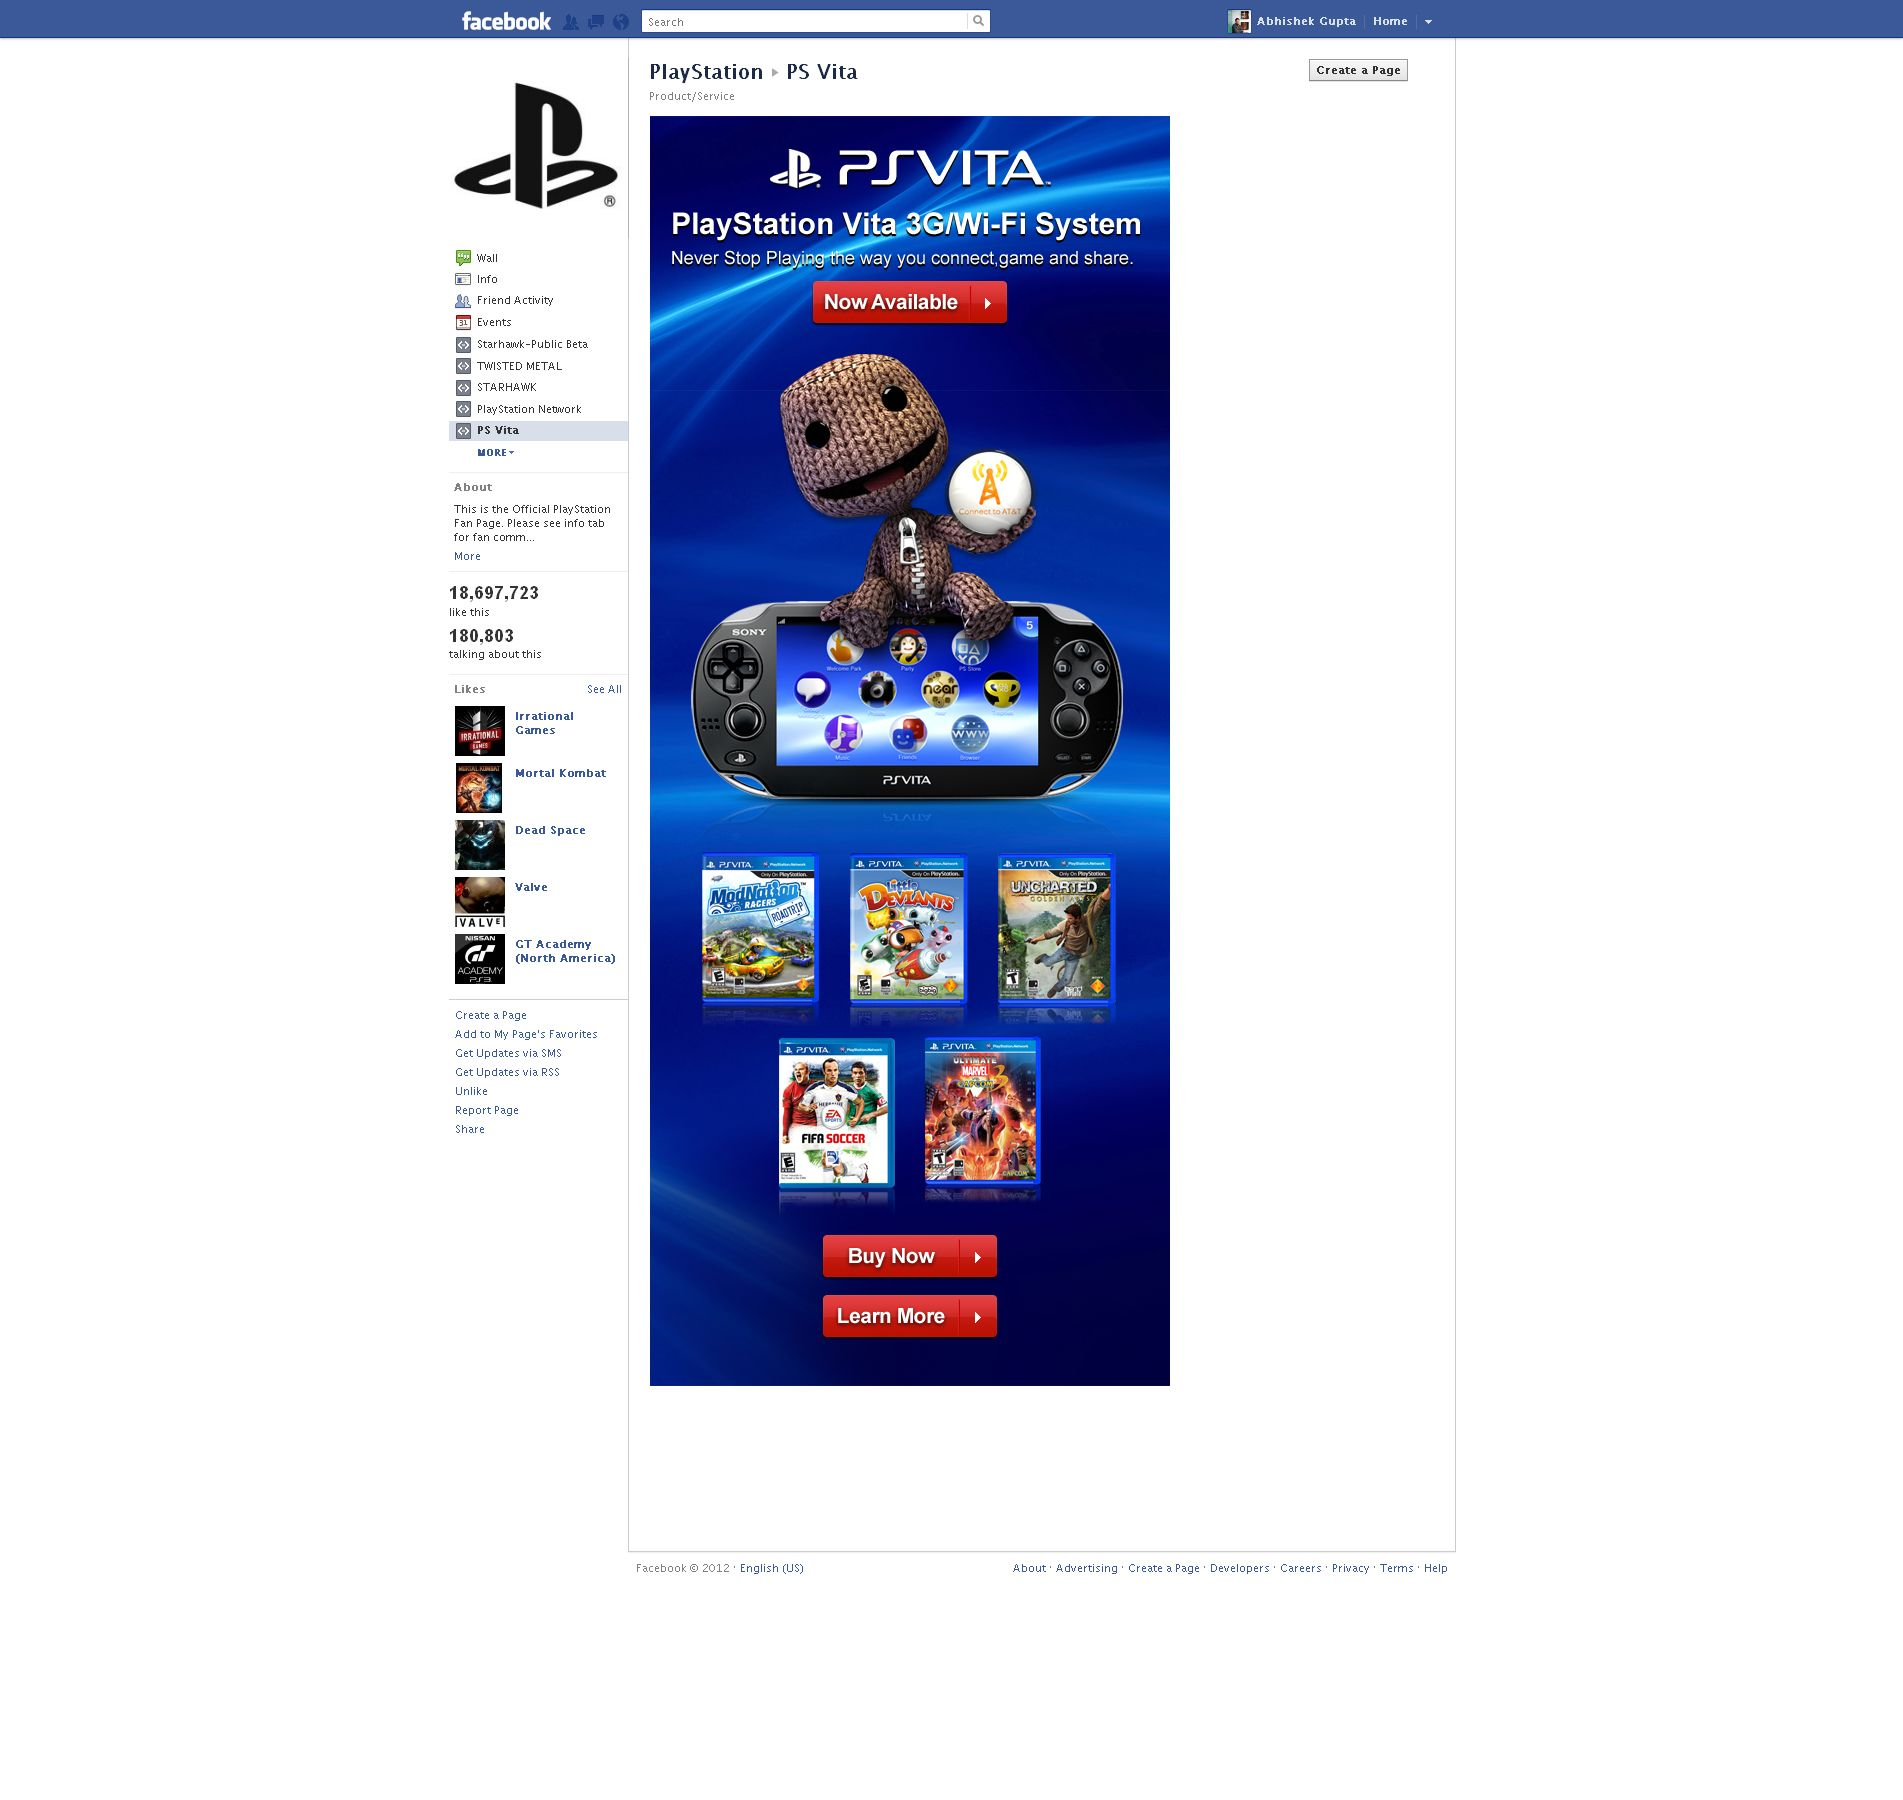 Sony Playstation Ps Vita Launch Facebook Page Design Mock 2 Ps Vita Playstation Sony Playstation